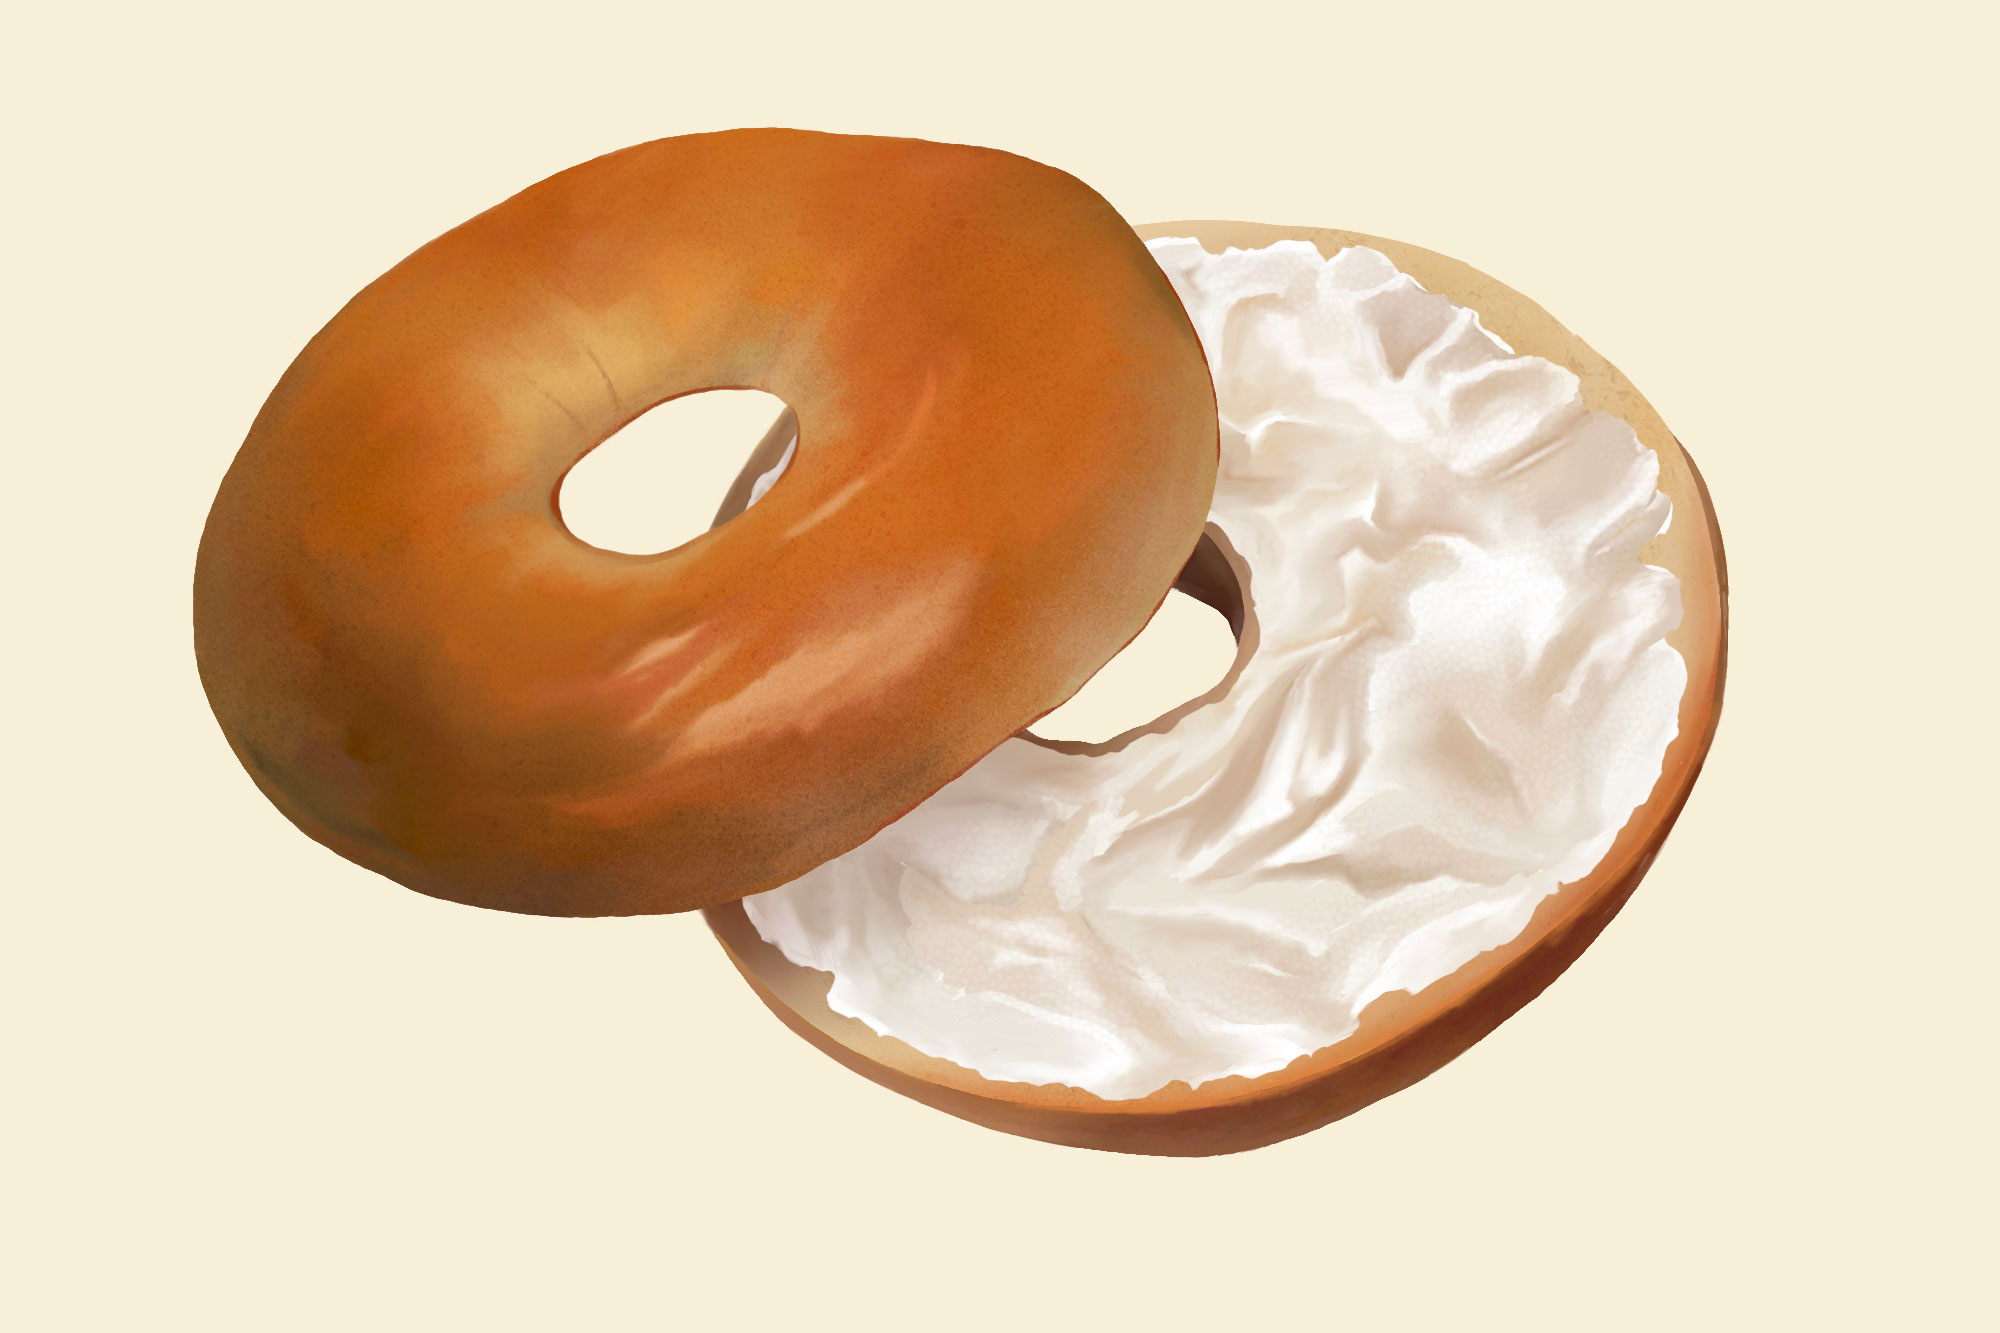 illustration of bagel with cream cheese